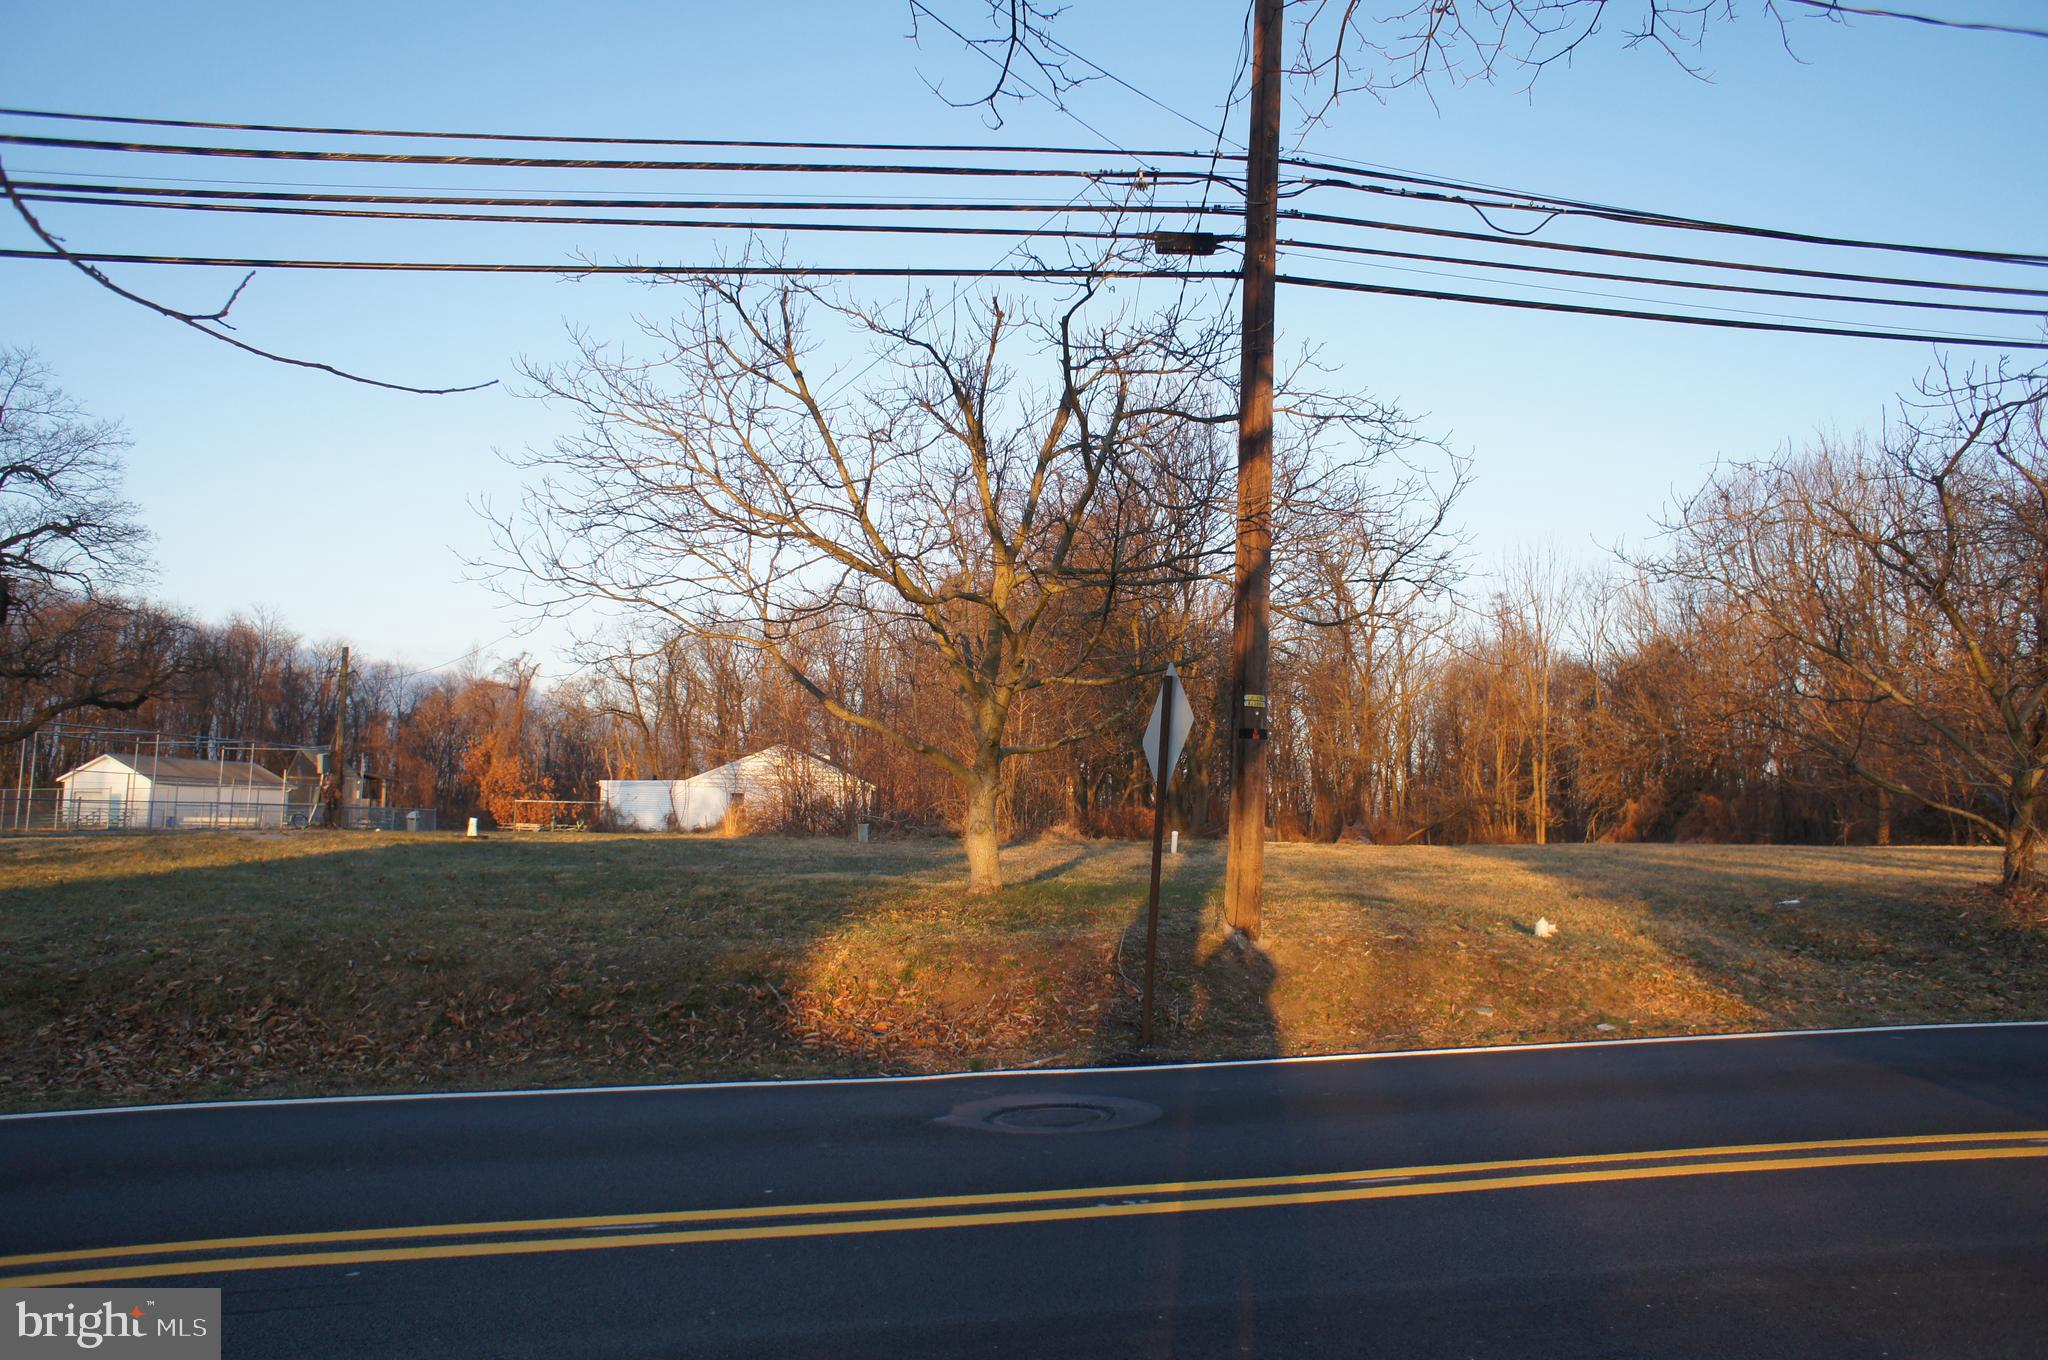 0 SAND HILL ROAD, HUMMELSTOWN, PA 17036